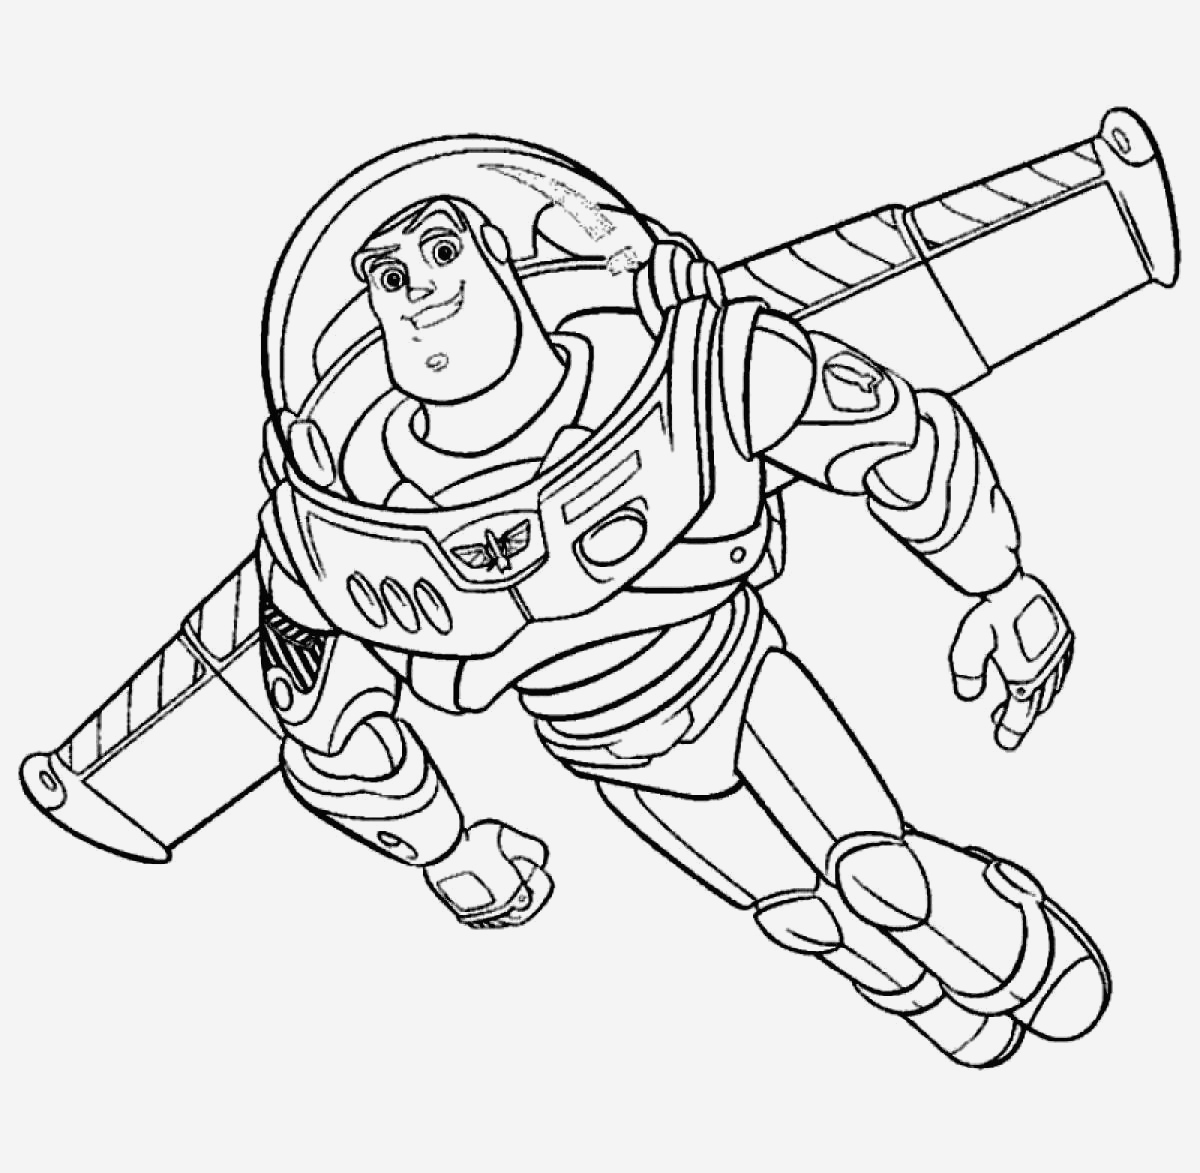 Coloriage toy Story 4 Fresh Free Printable Buzz Lightyear Coloring Pages for Kids Of Coloriage toy Story 4